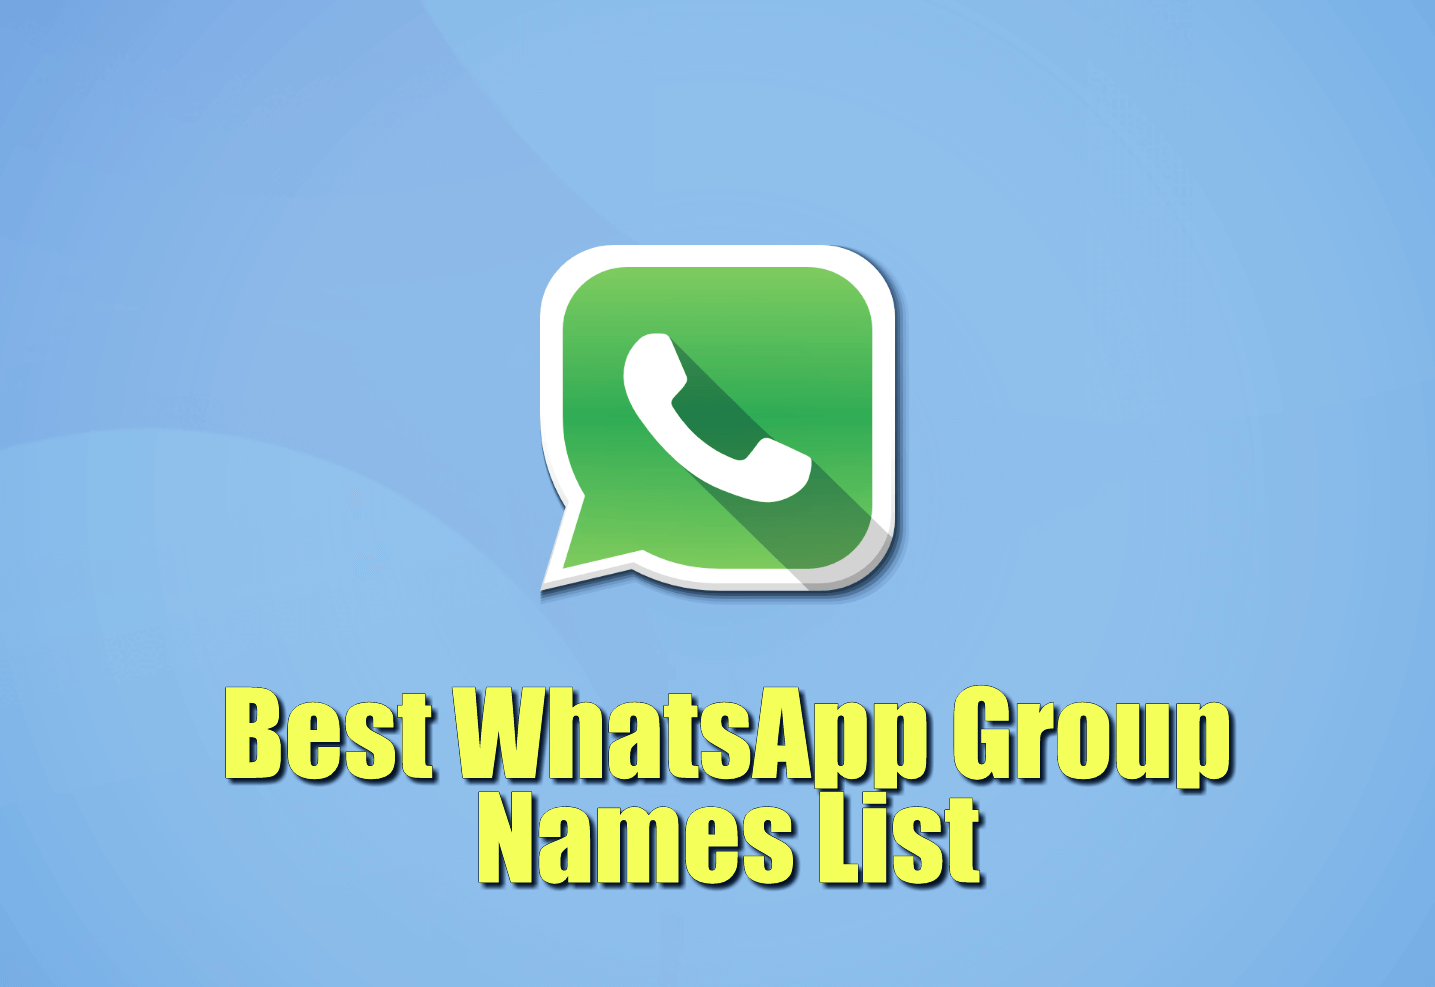 BEST TRENDING WHATSAPP GROUP NAMES 2019 IN MARATHI